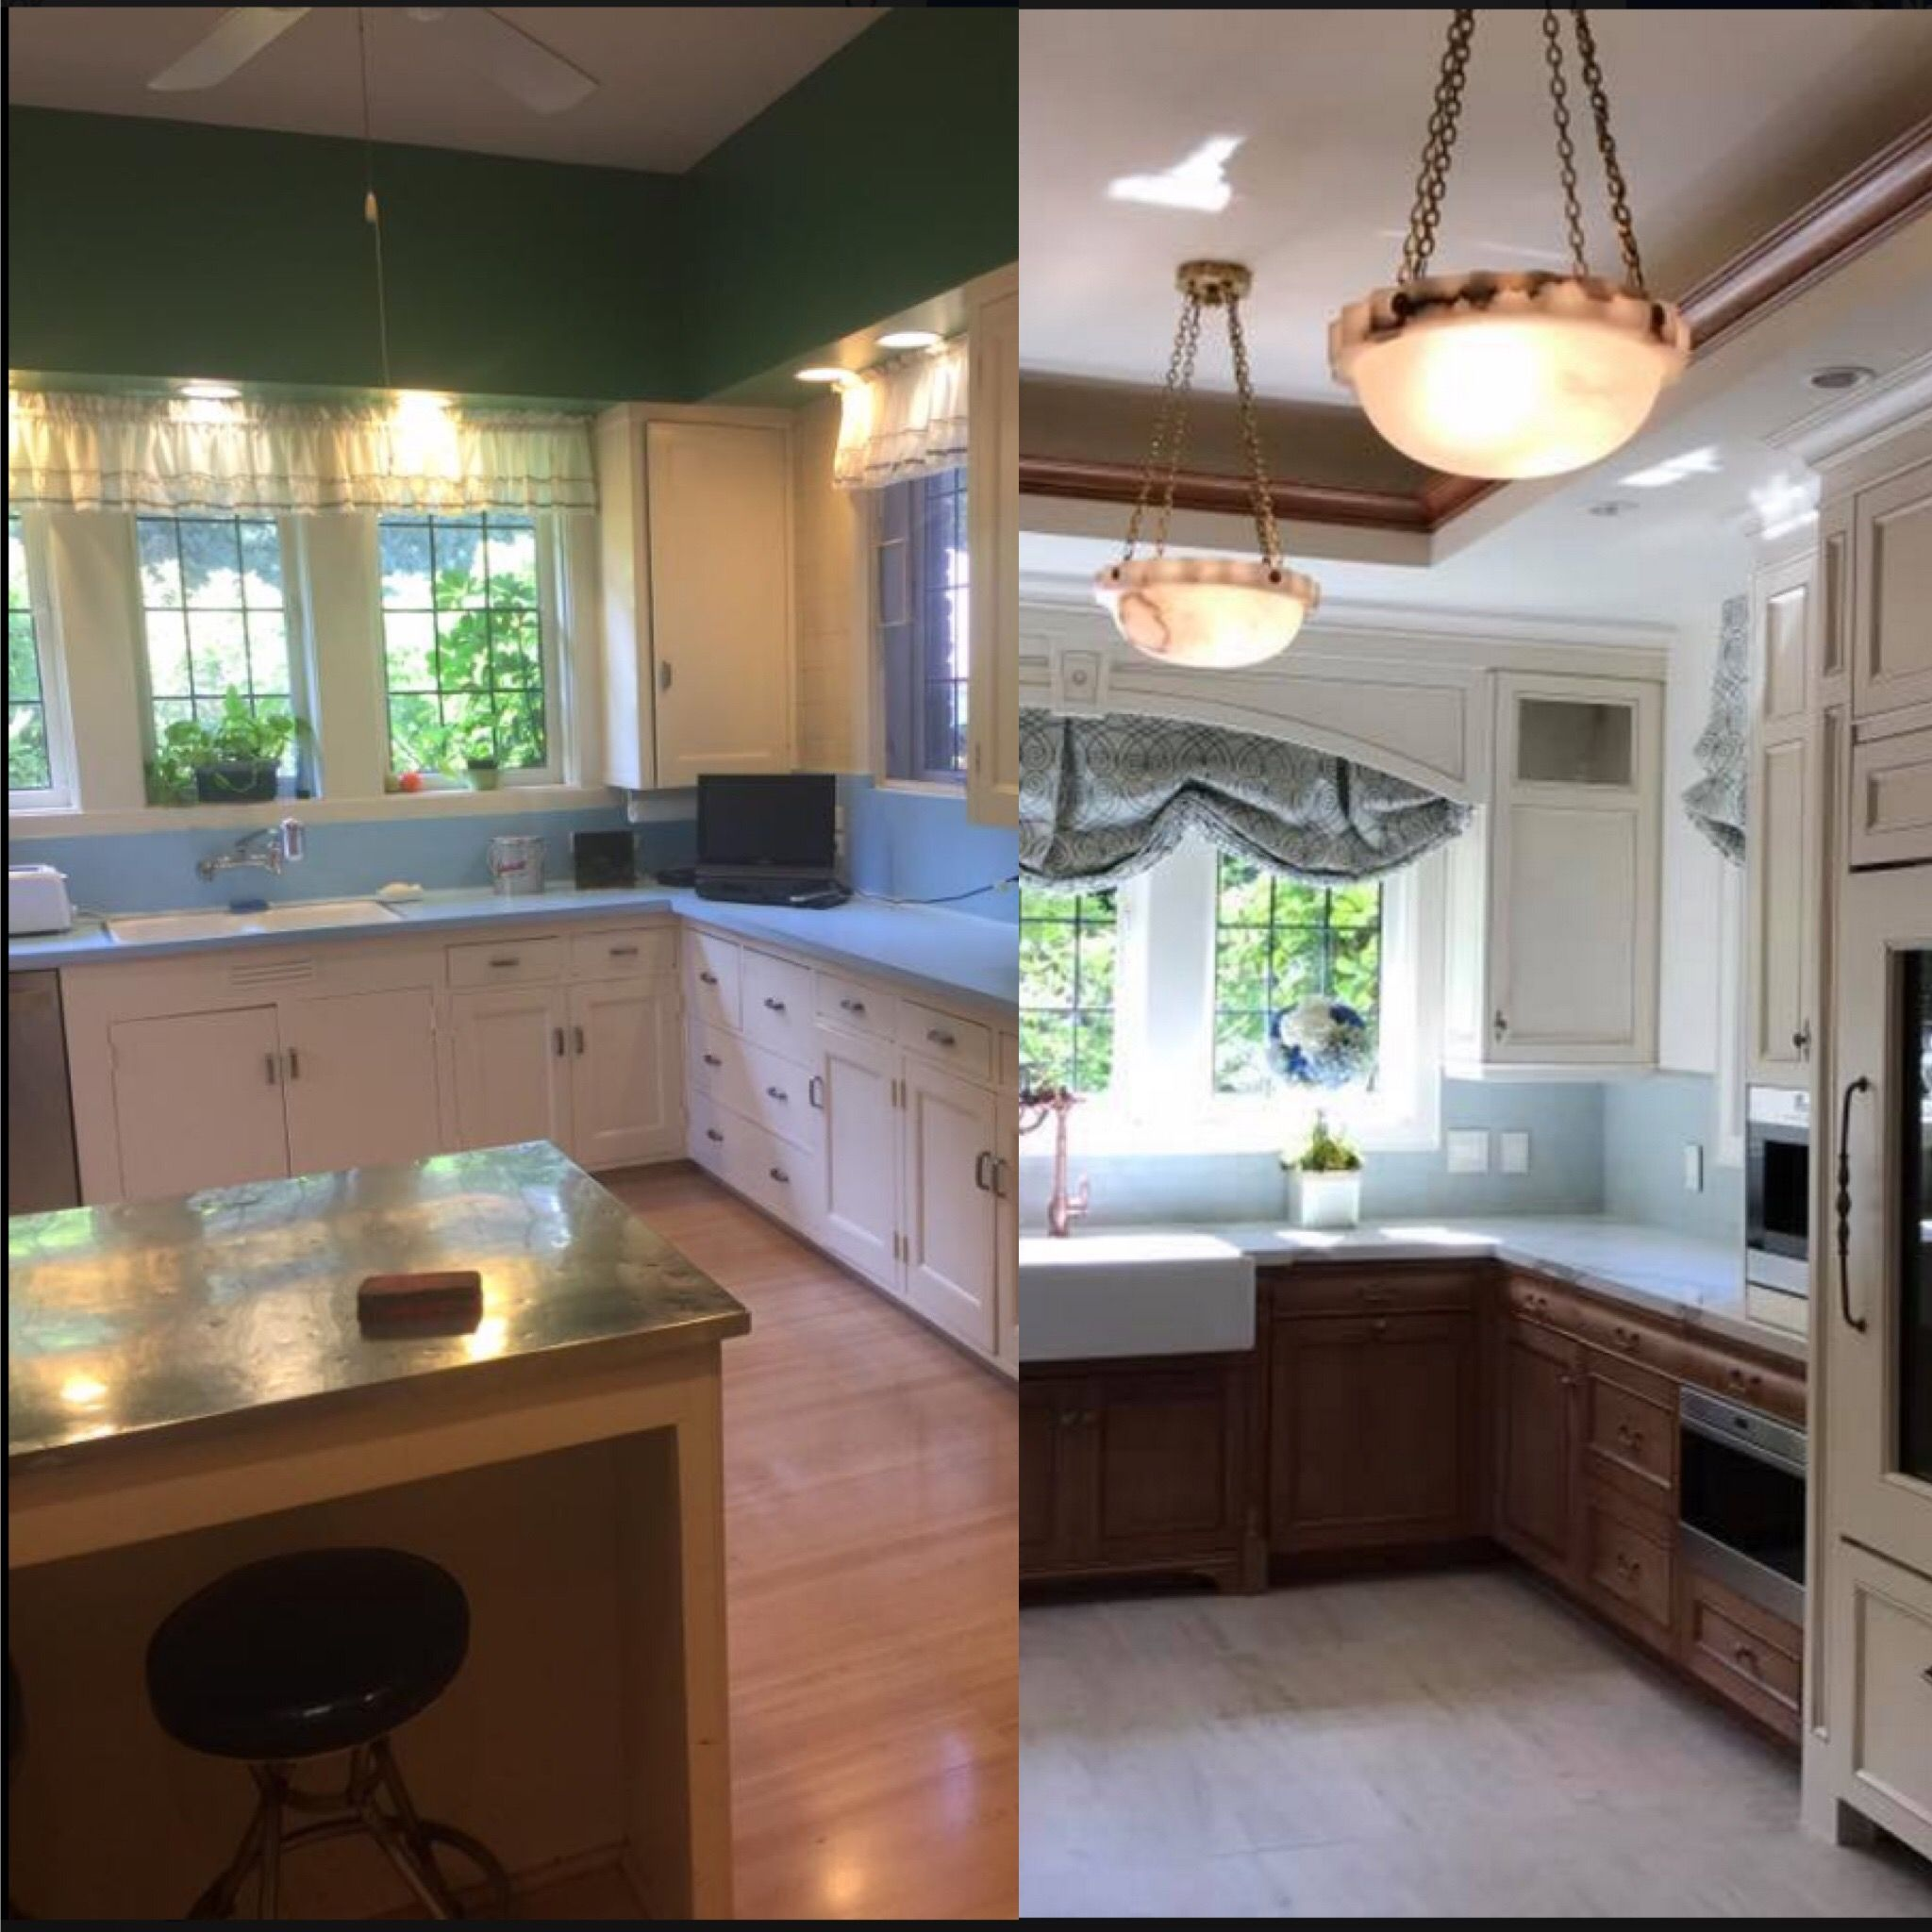 Superbe Before And After Shot Of The Kitchen From The 2017 Pasadena Showcase House!